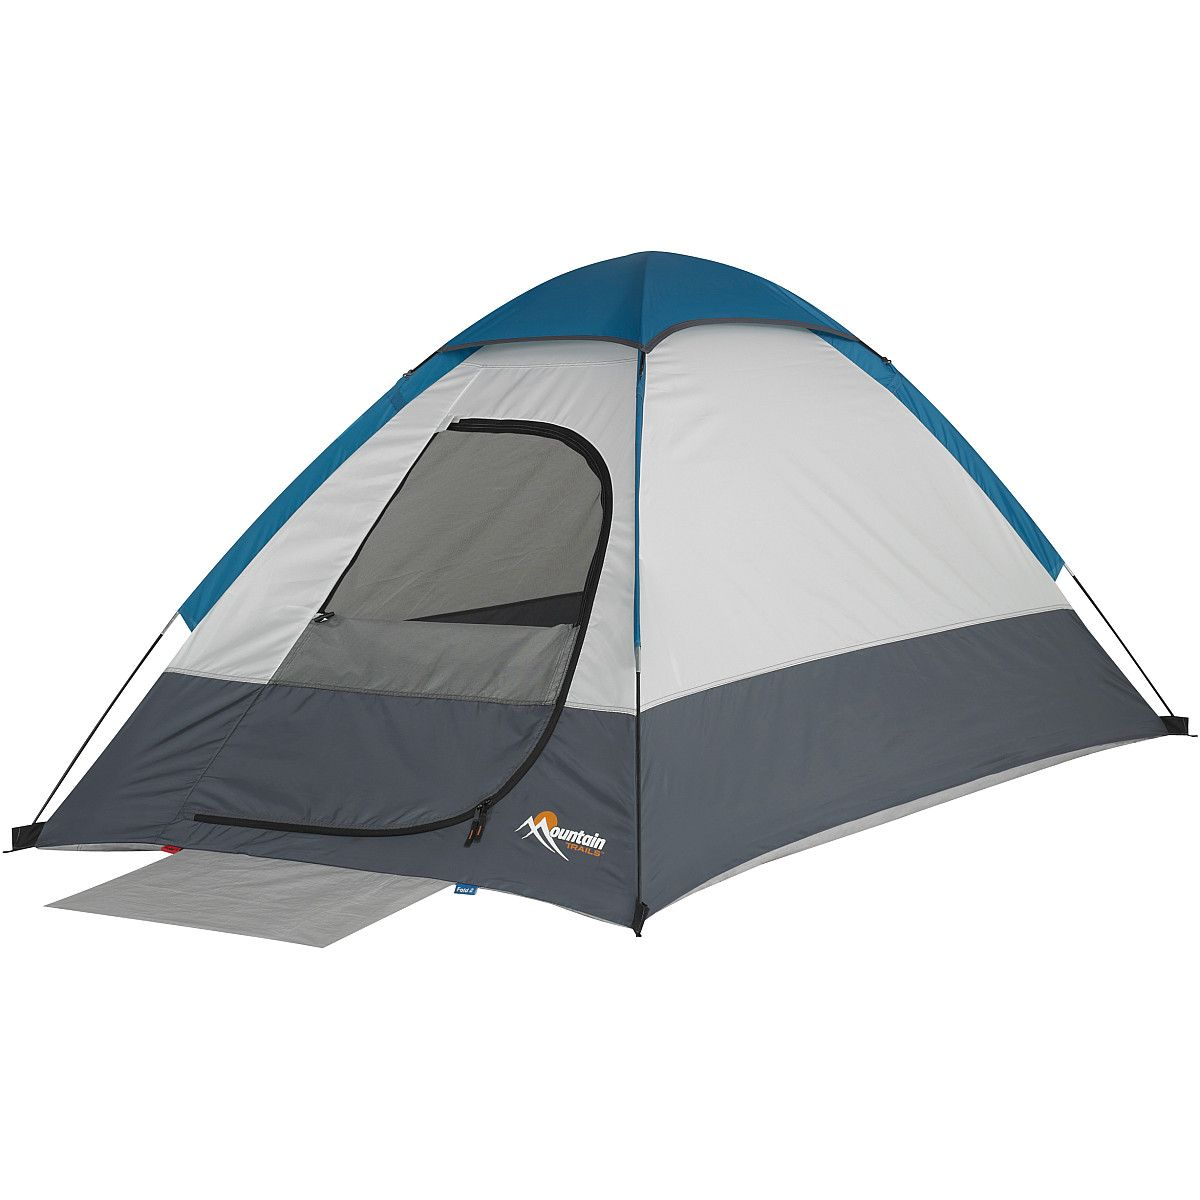 Wenzel Mountain Trails Cedar Brook 7 x 4 Foot Backpacking Tent (2 Person) -  sc 1 st  Pinterest & Wenzel Mountain Trails Cedar Brook 7 x 4 Foot Backpacking Tent (2 ...